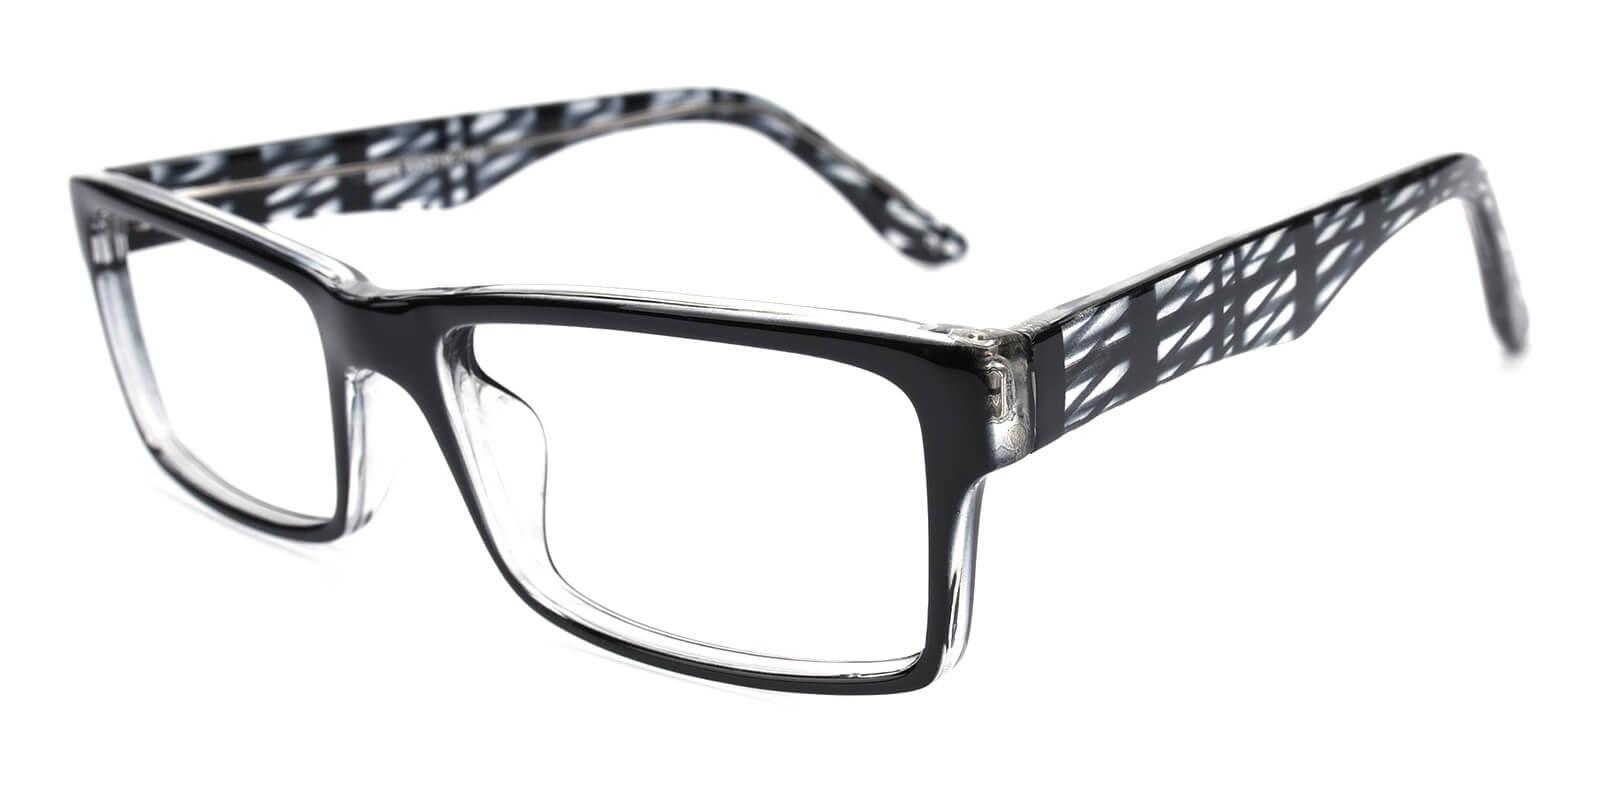 Moosern-Black-Rectangle-Acetate-Eyeglasses-additional1